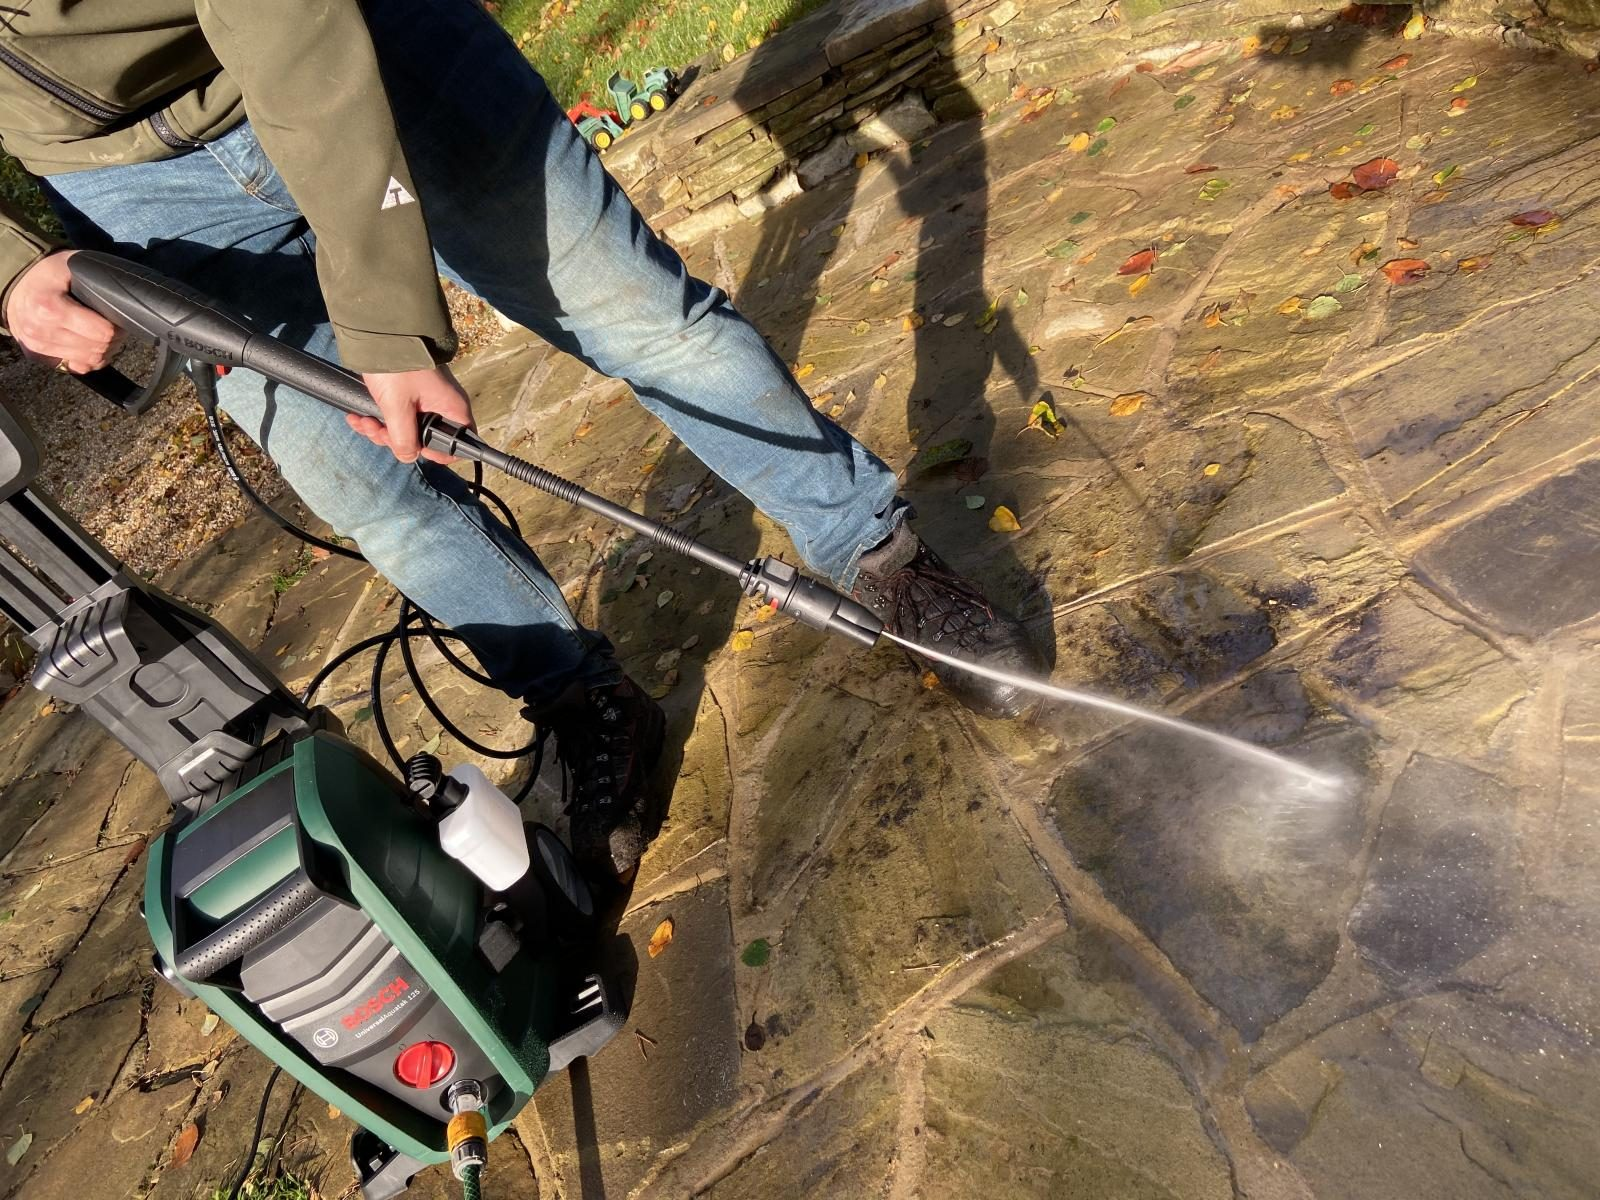 Power washing the patio with the Bosch UniversalAquatak 125 pressure washer